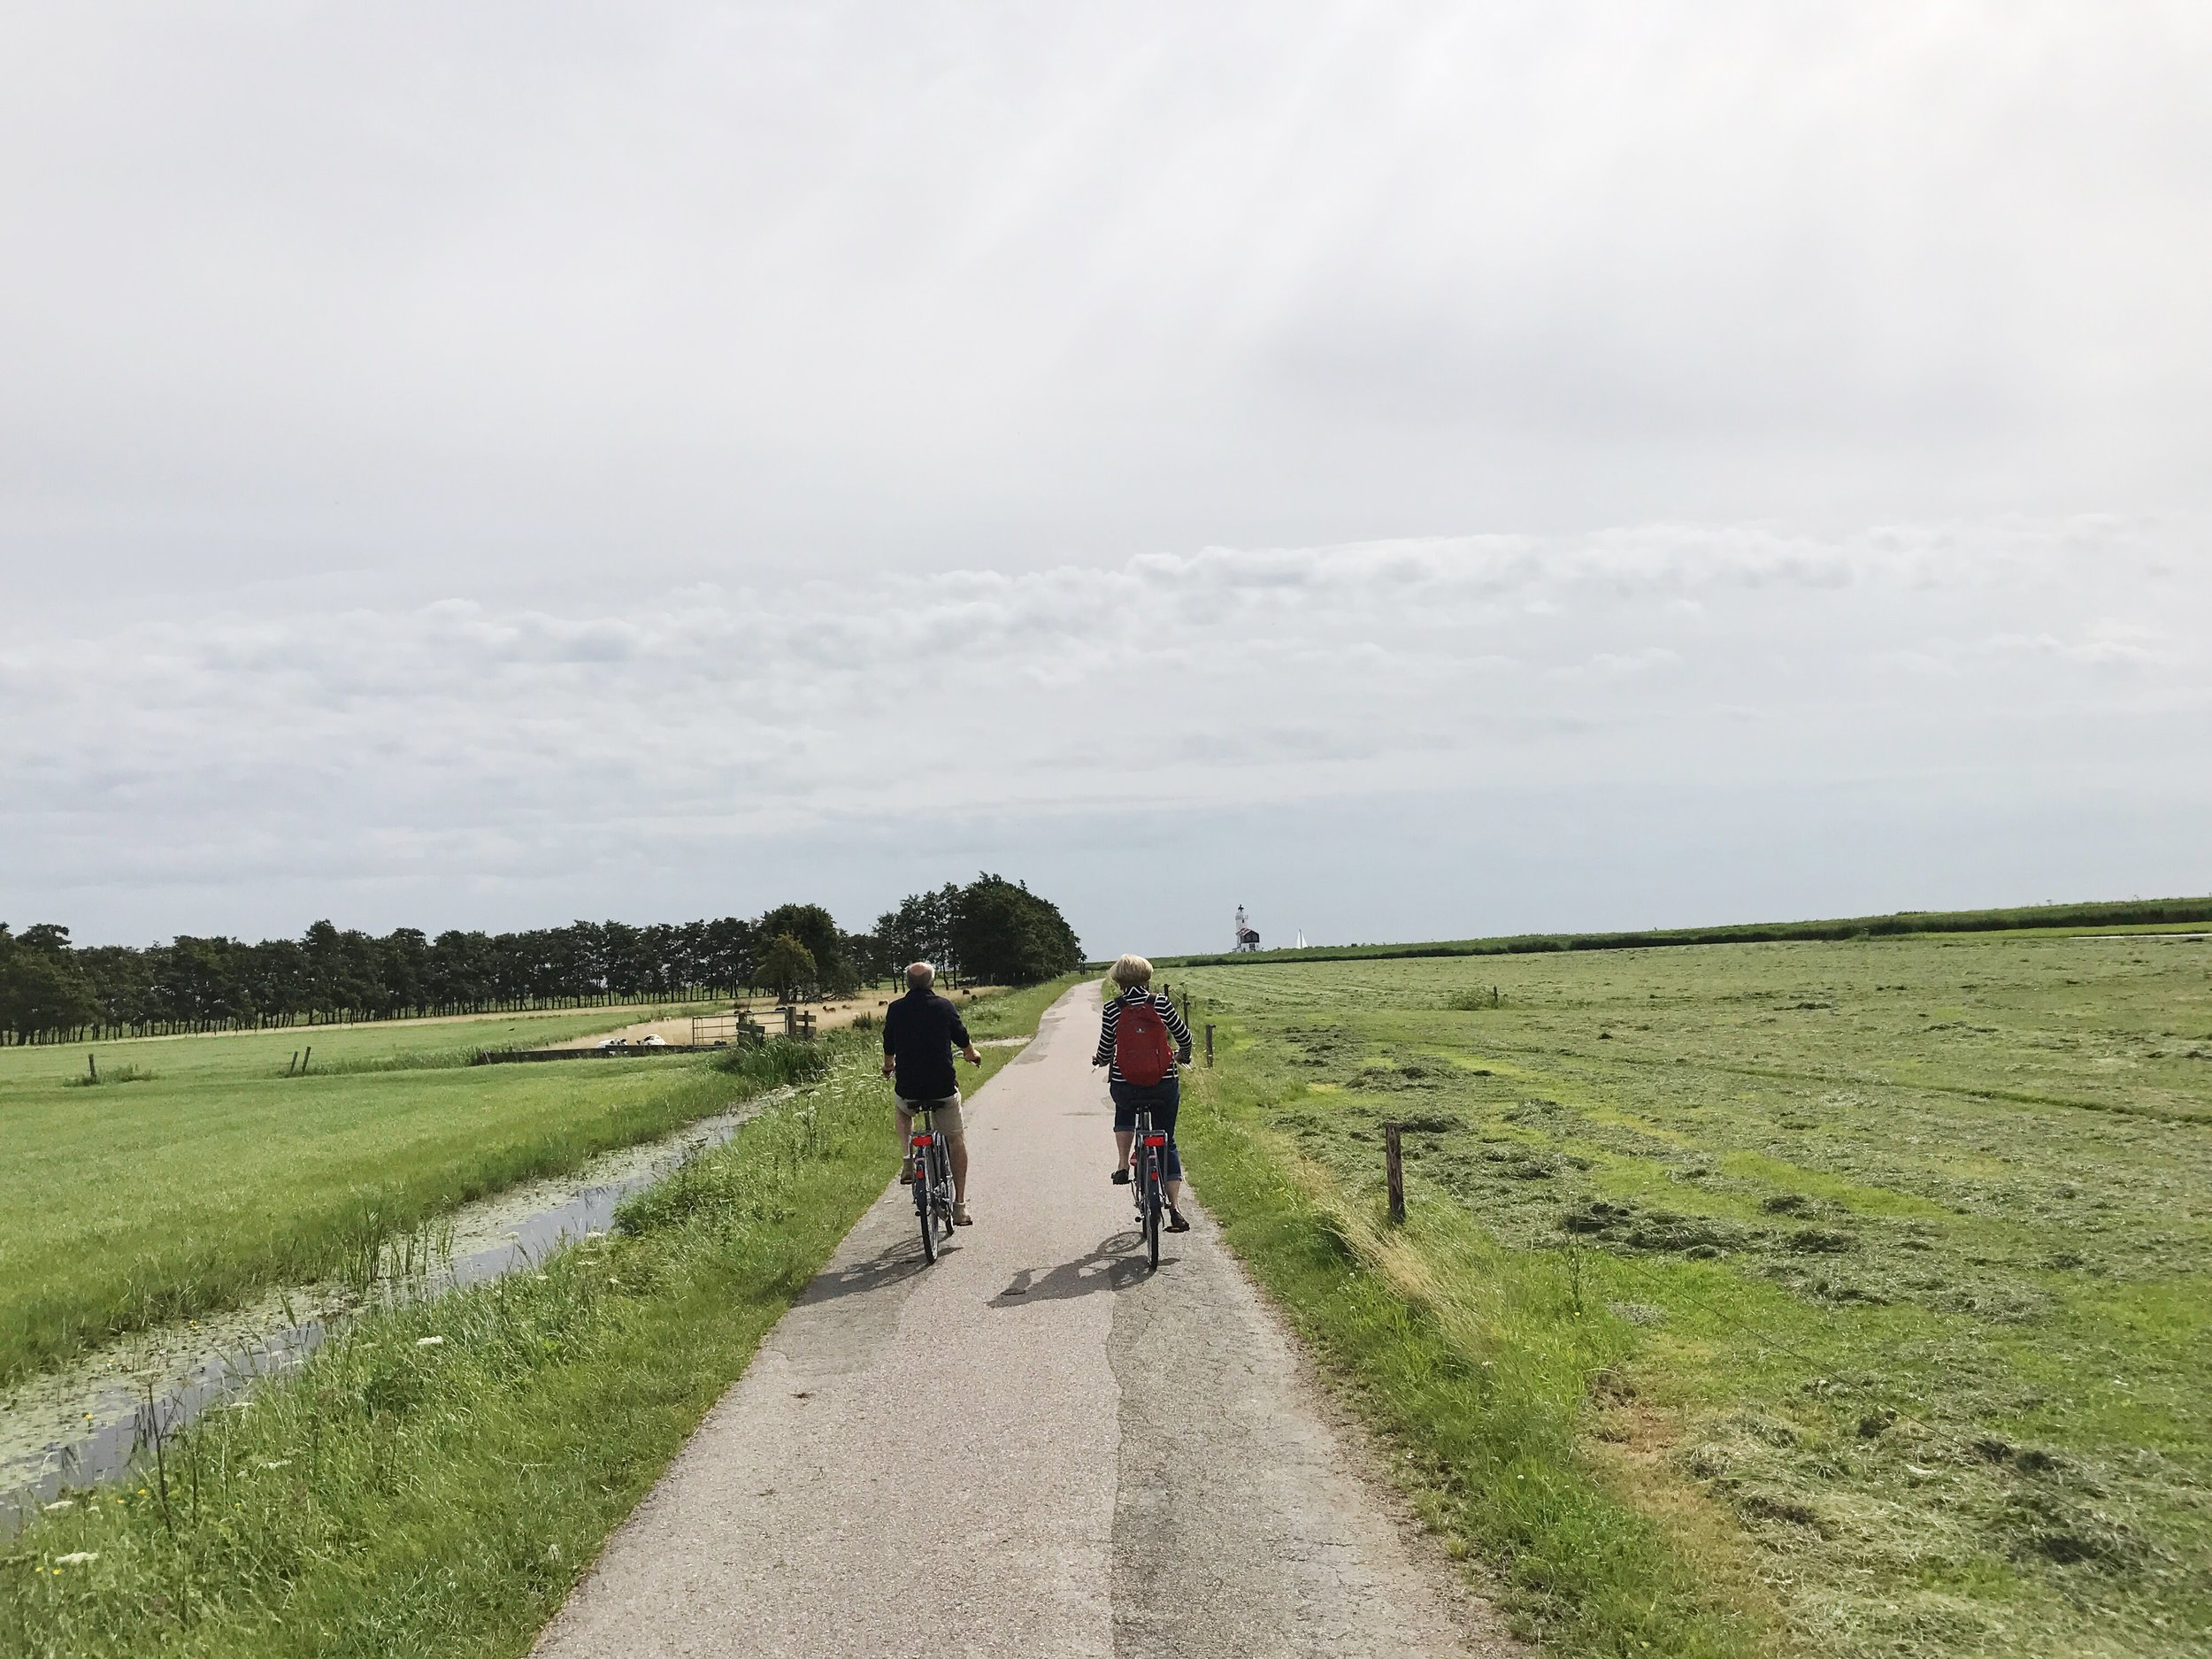 Biking in Marken Netherlands